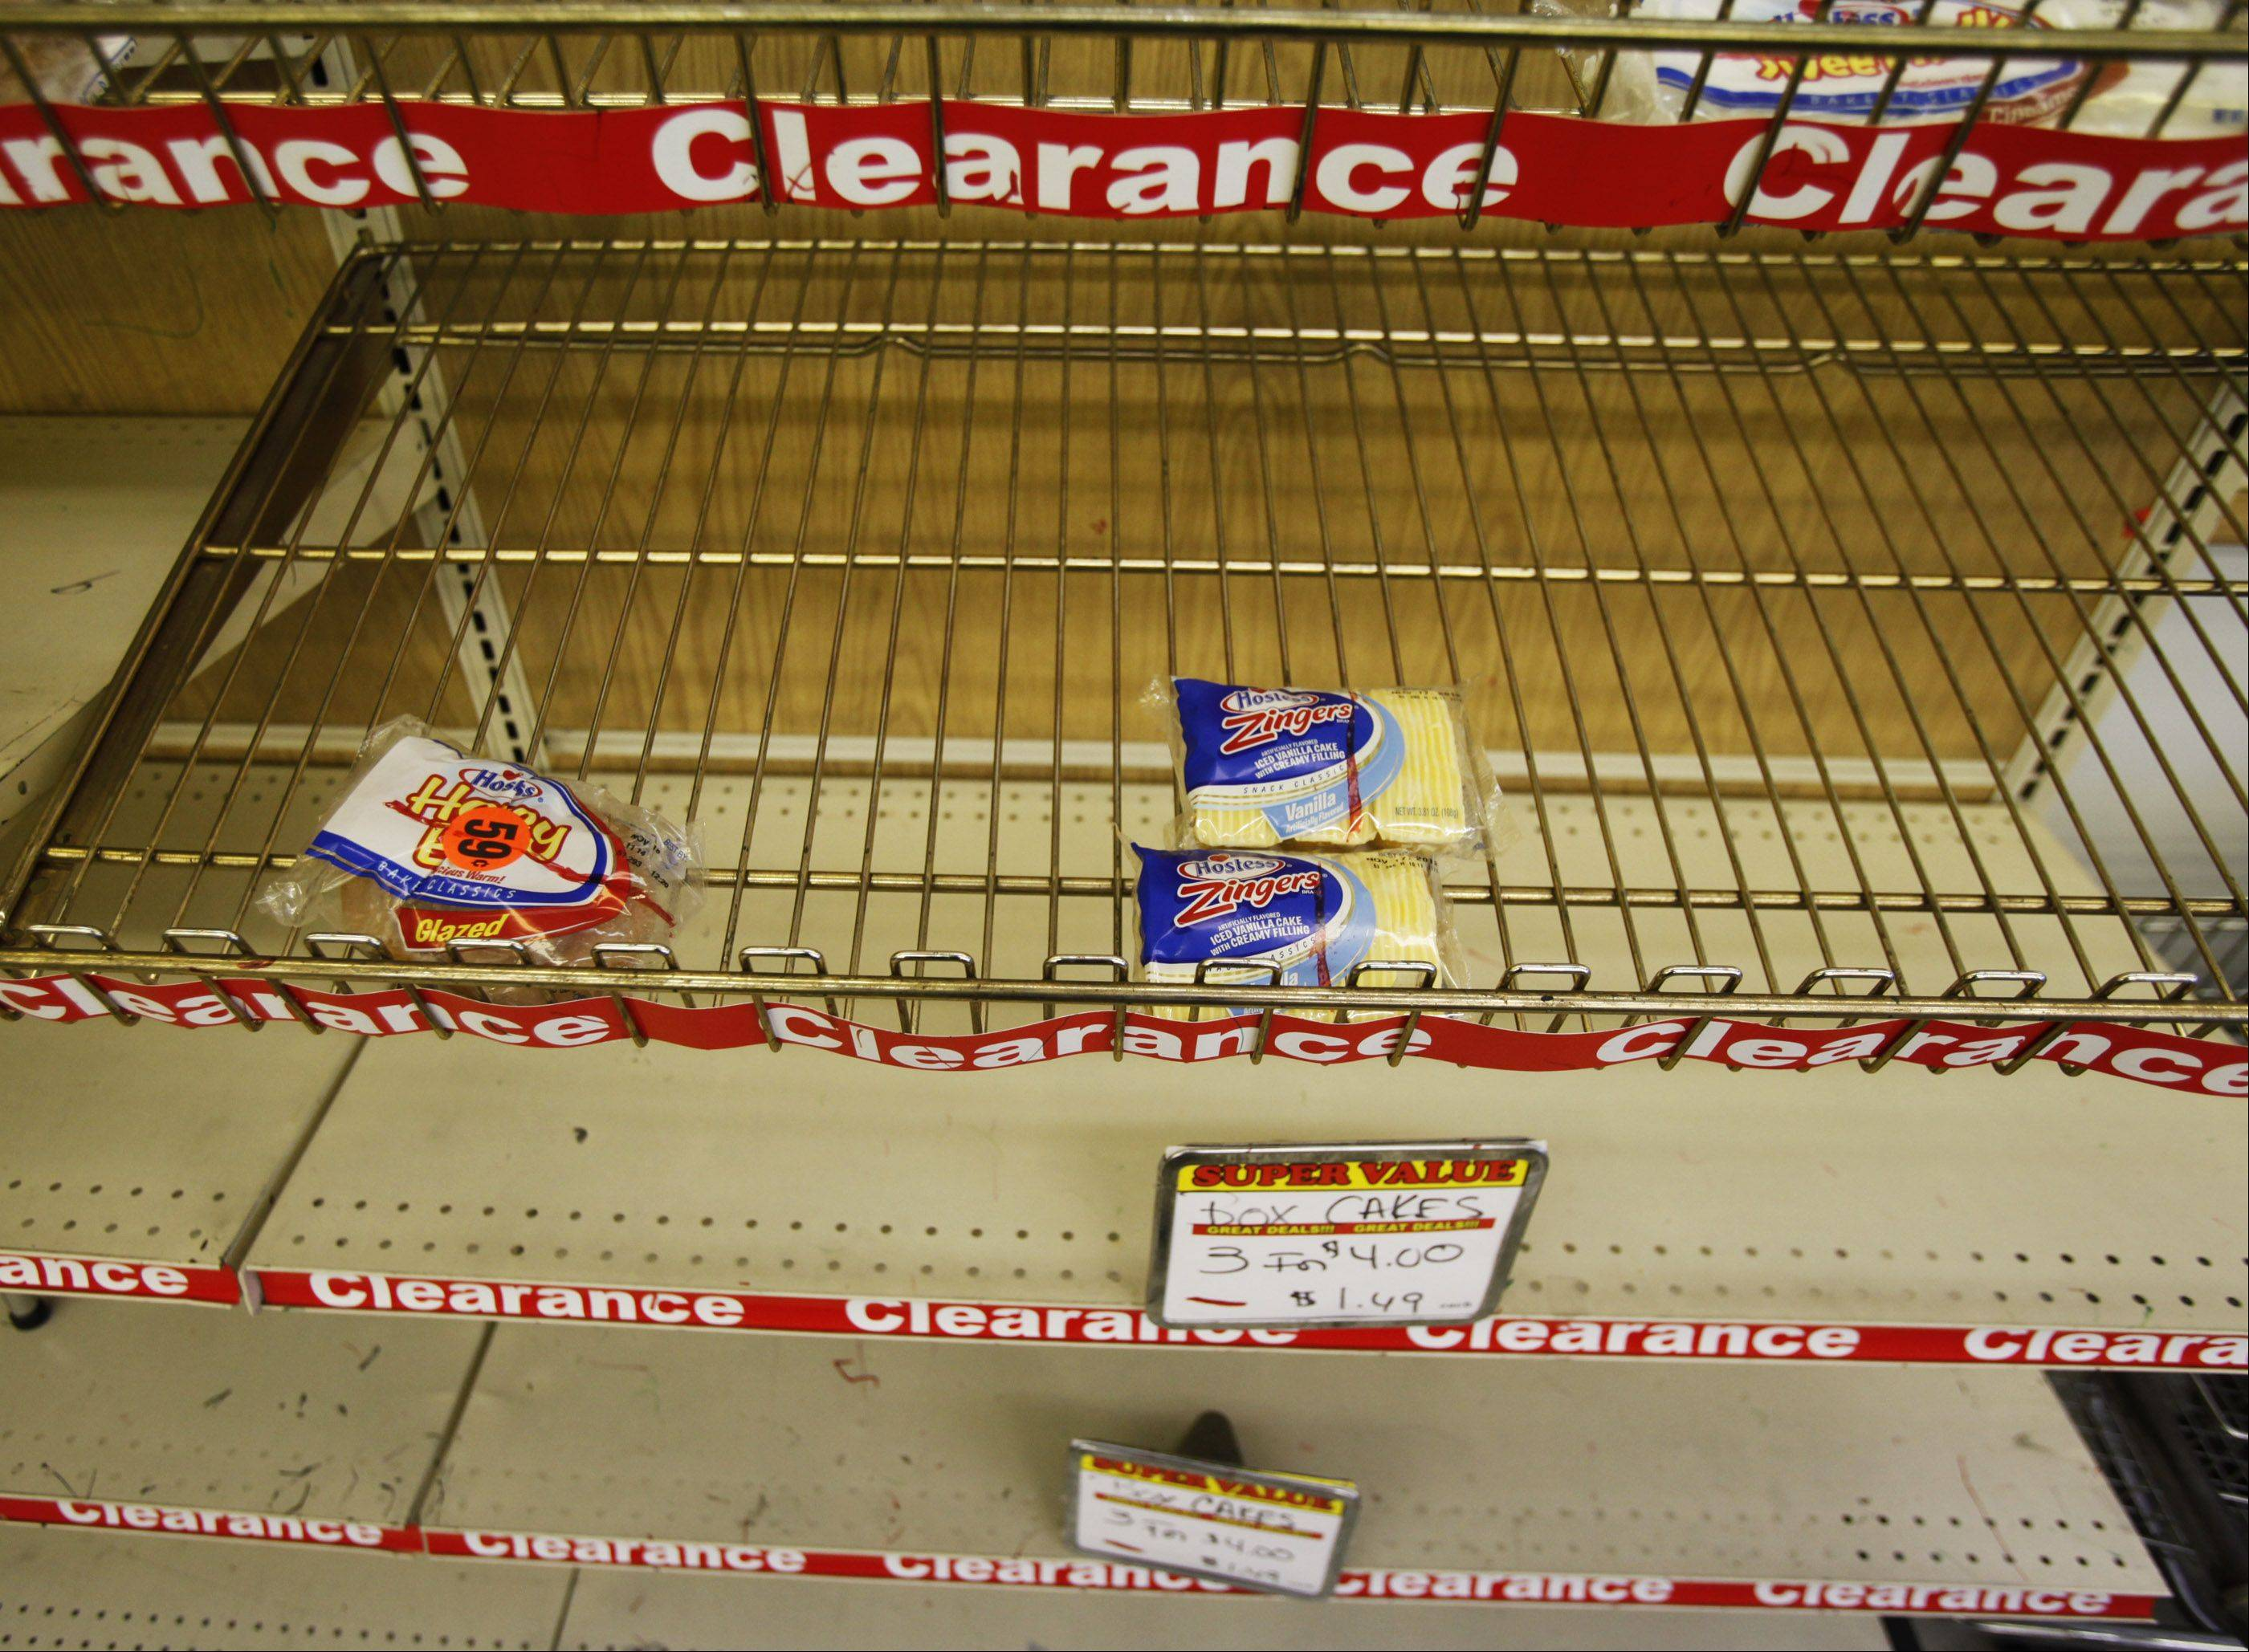 Wonder Hostess Thrift Shop racks were cleaned out quickly, especially for their top-selling items like Zingers and Twinkies.